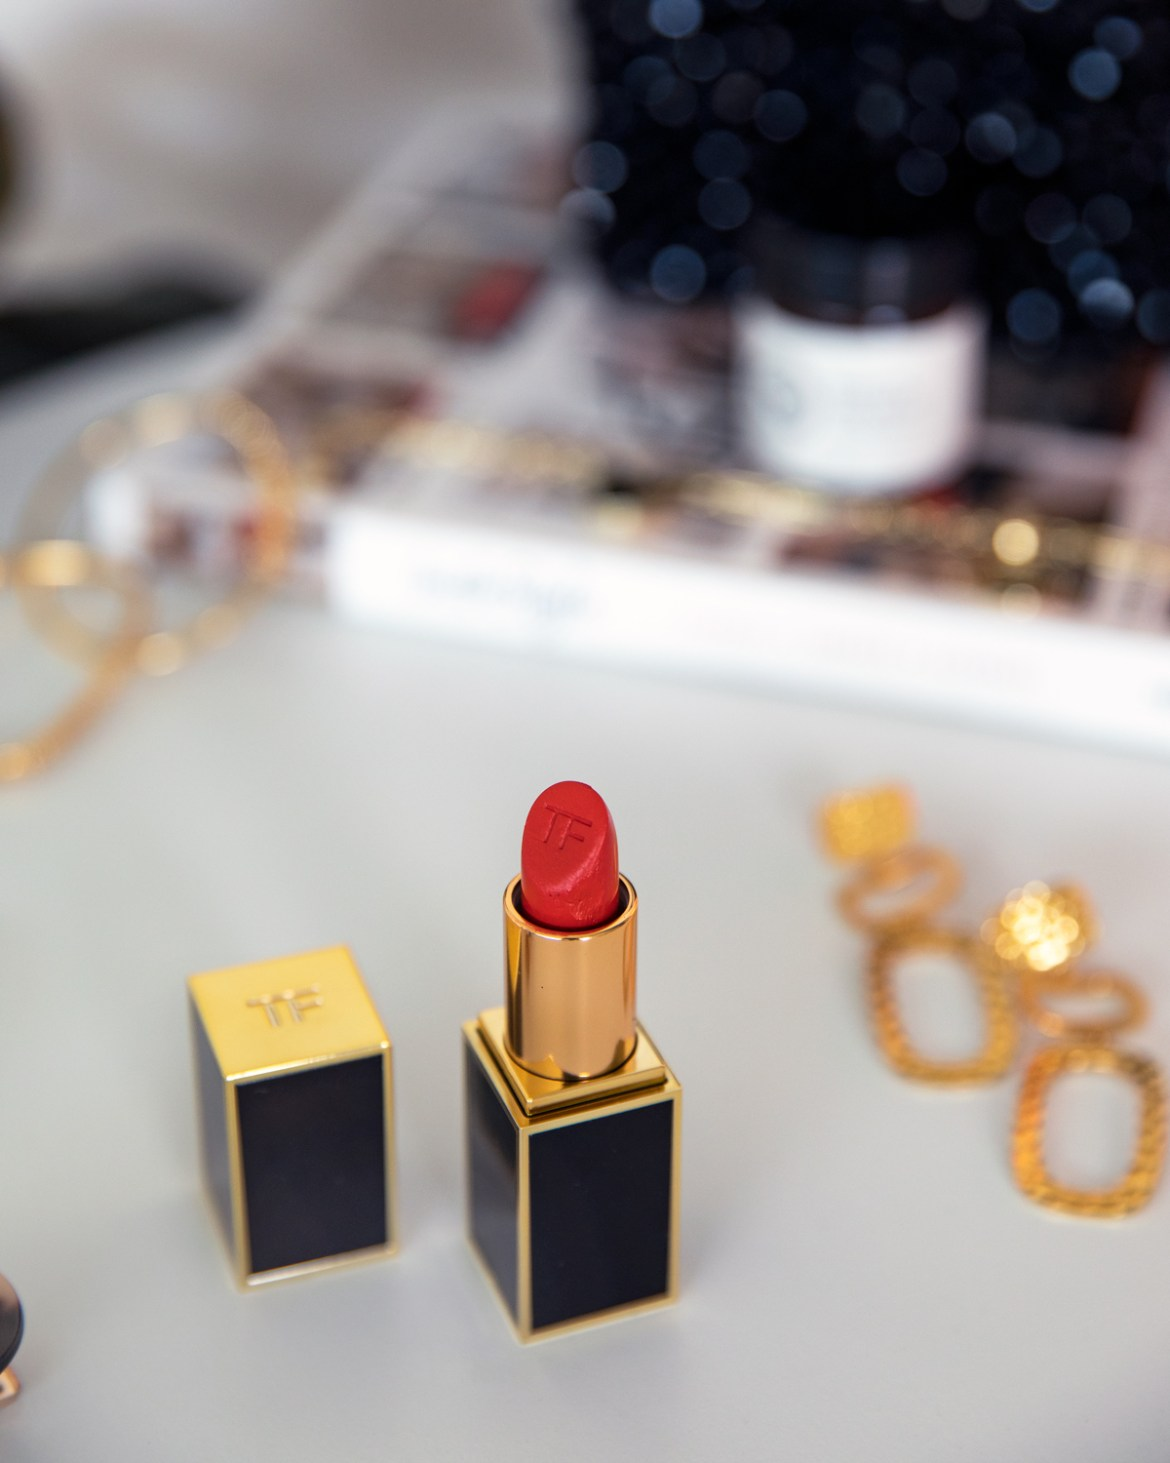 Tom Ford lipstick product review by Inspiring Wit from Sephora haul